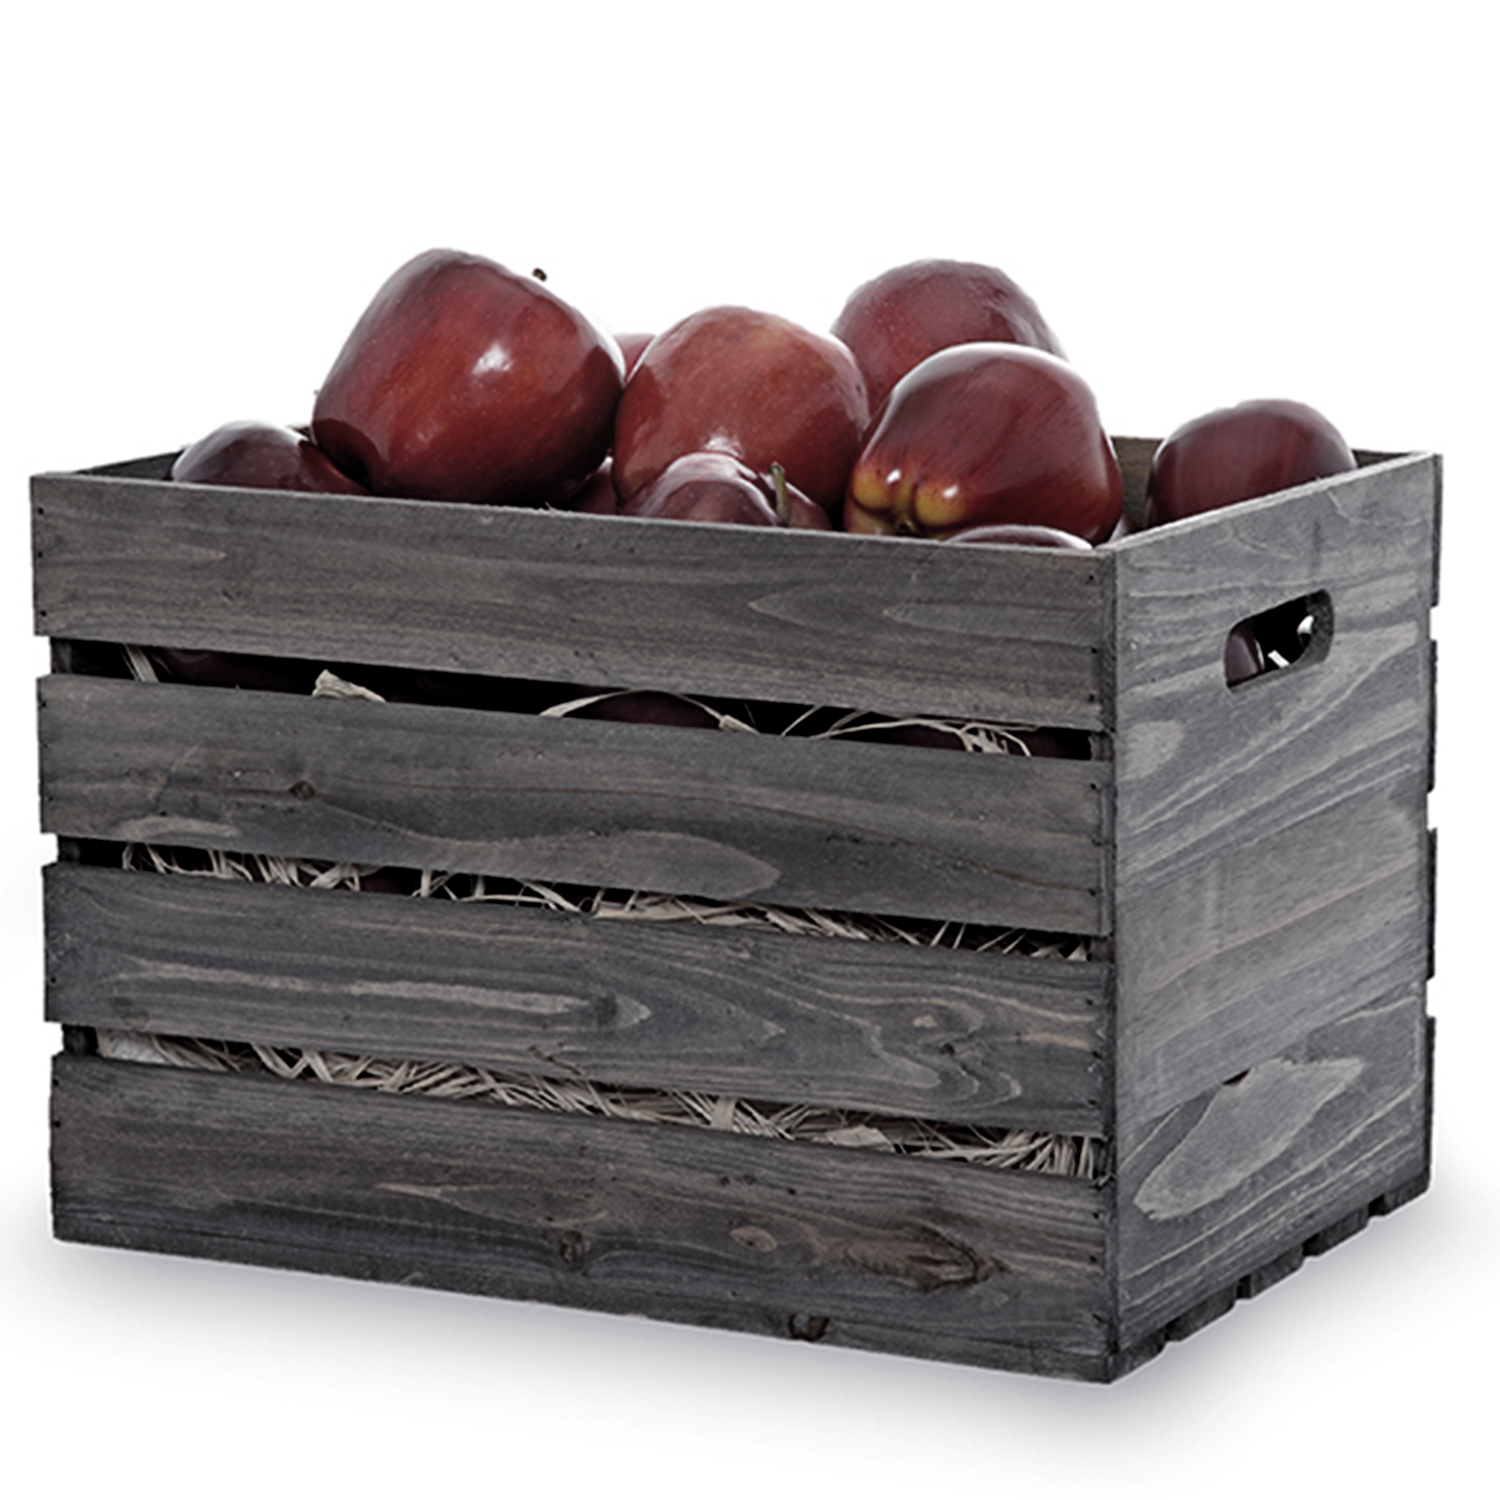 Antique Grey Wooden Storage Crate with In-Handles - Small 13in